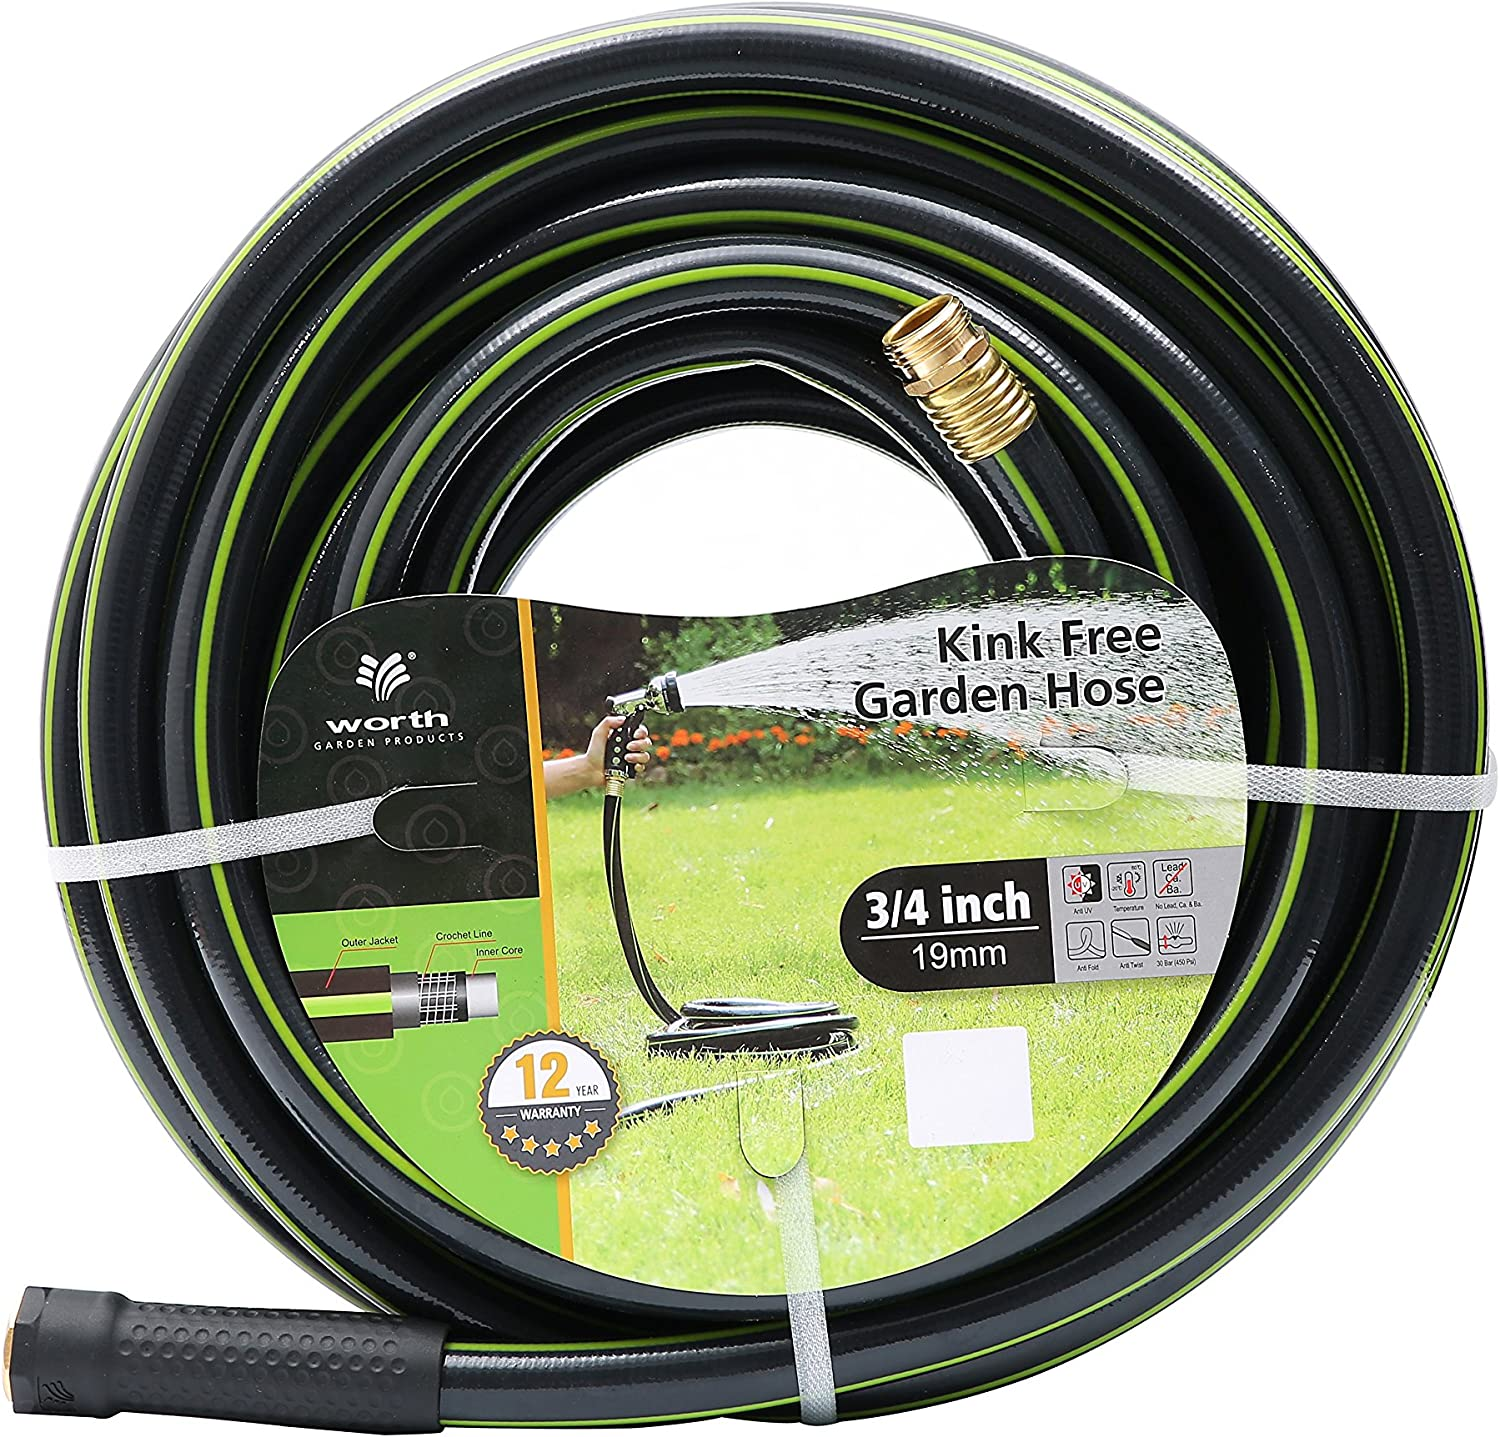 Worth Garden 3/4 x 75ft Rugged Water Hose - Durable Non Kinking Garden Hose - PVC Material with Brass Hose Fittings - Flexible Hose for Household and Professional Use 12-Year Warranty - H165B03